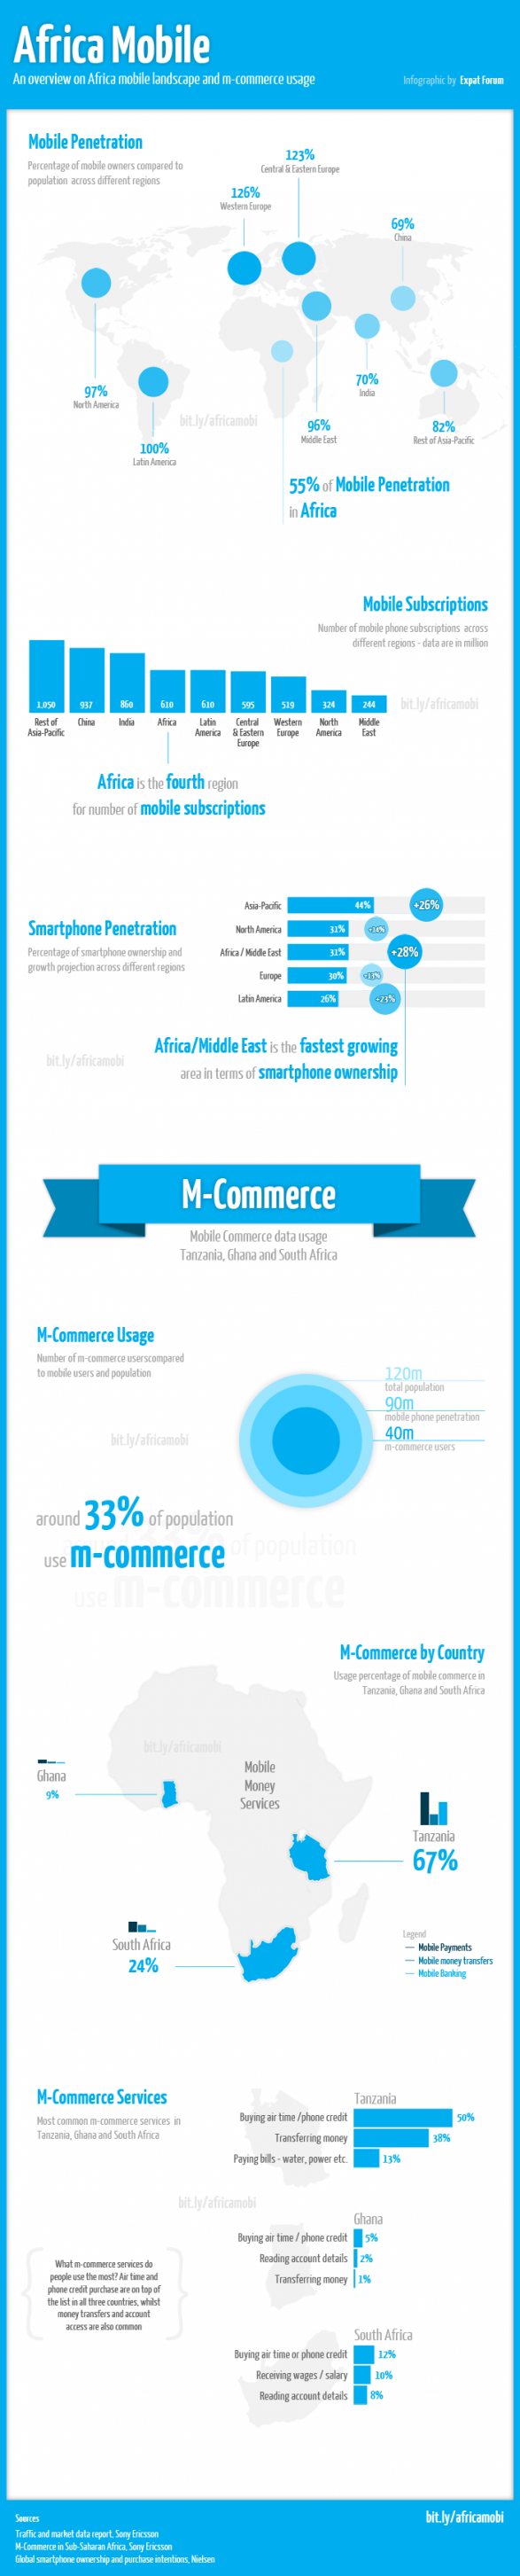 Africa Mobile Penetration & M-Commerce Usage